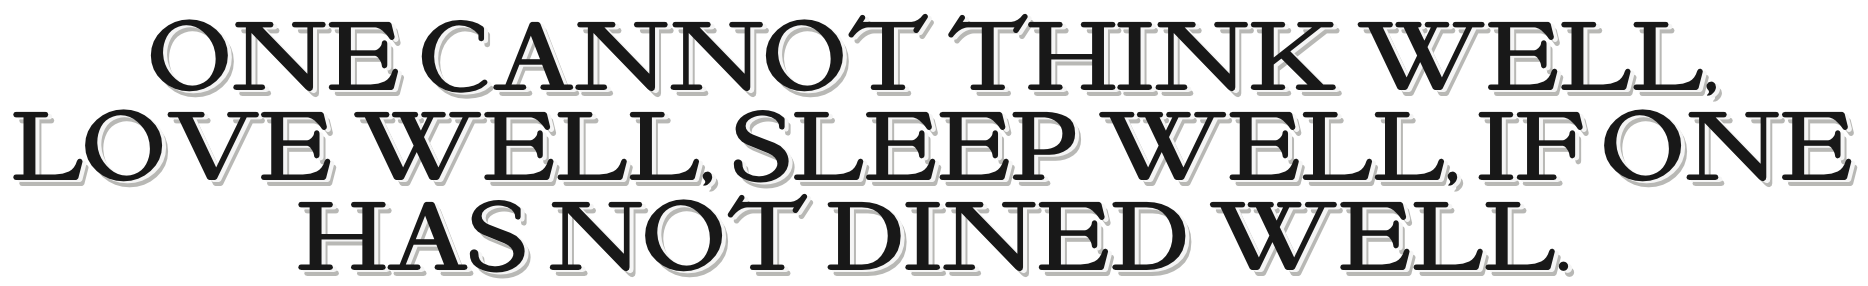 A quote: one cannot think well, love well, sleep well, if one has not dined well.